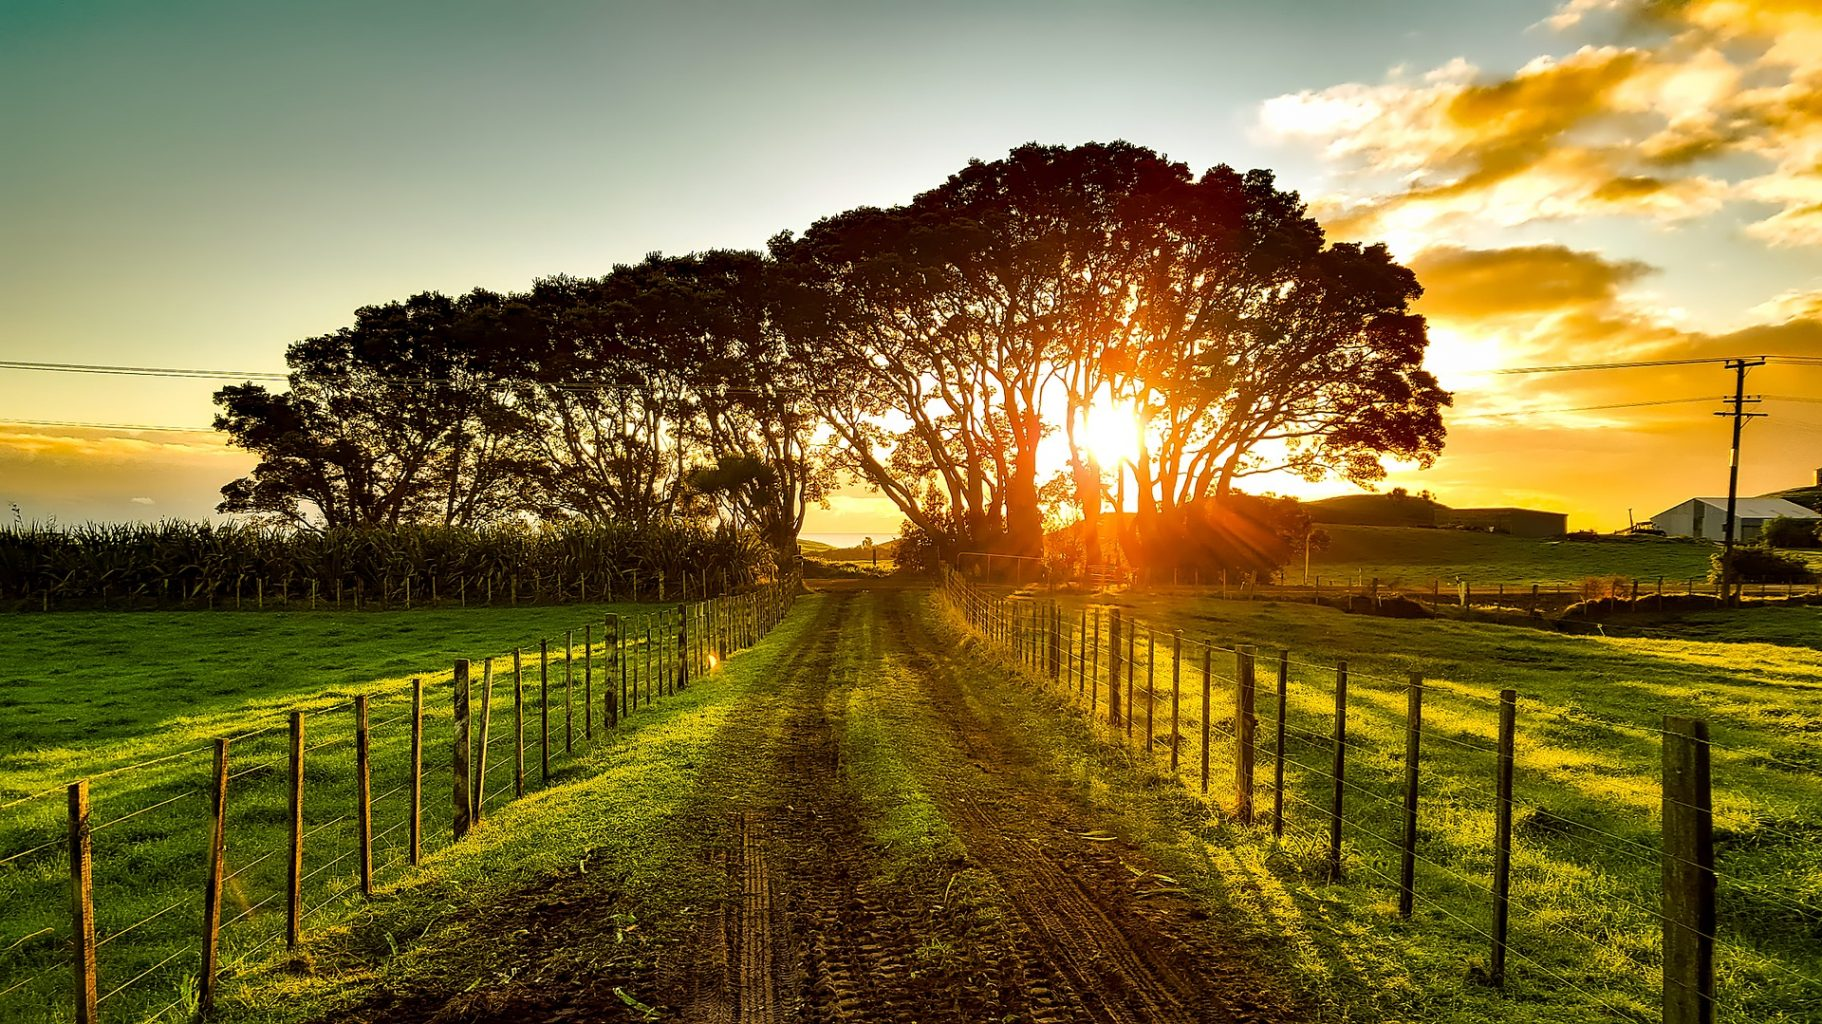 Image: dirt road going off into the distance with the sun setting behind some trees